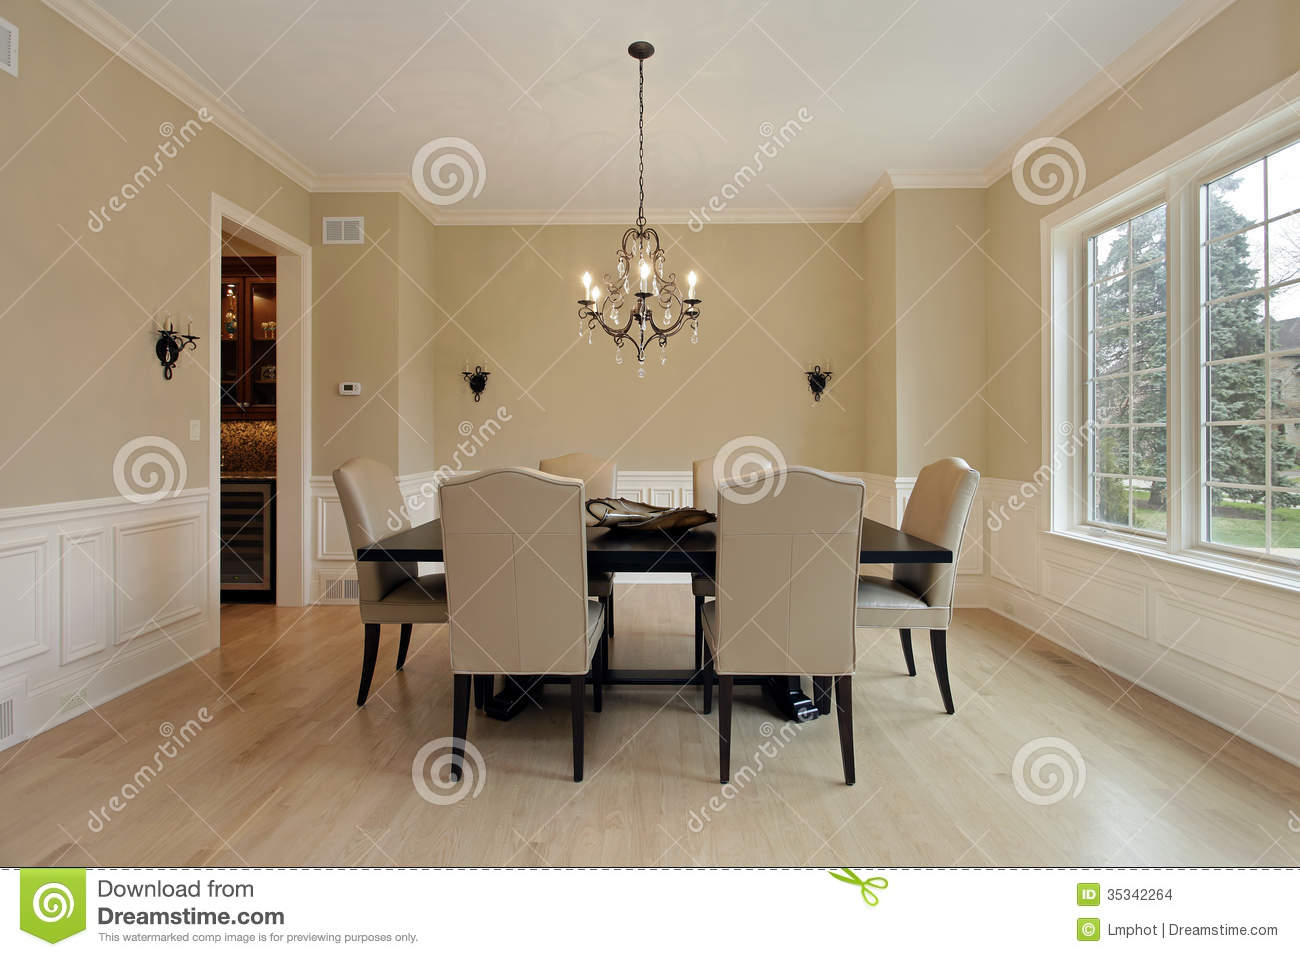 Ordinaire Dining Room With Candle Sconces